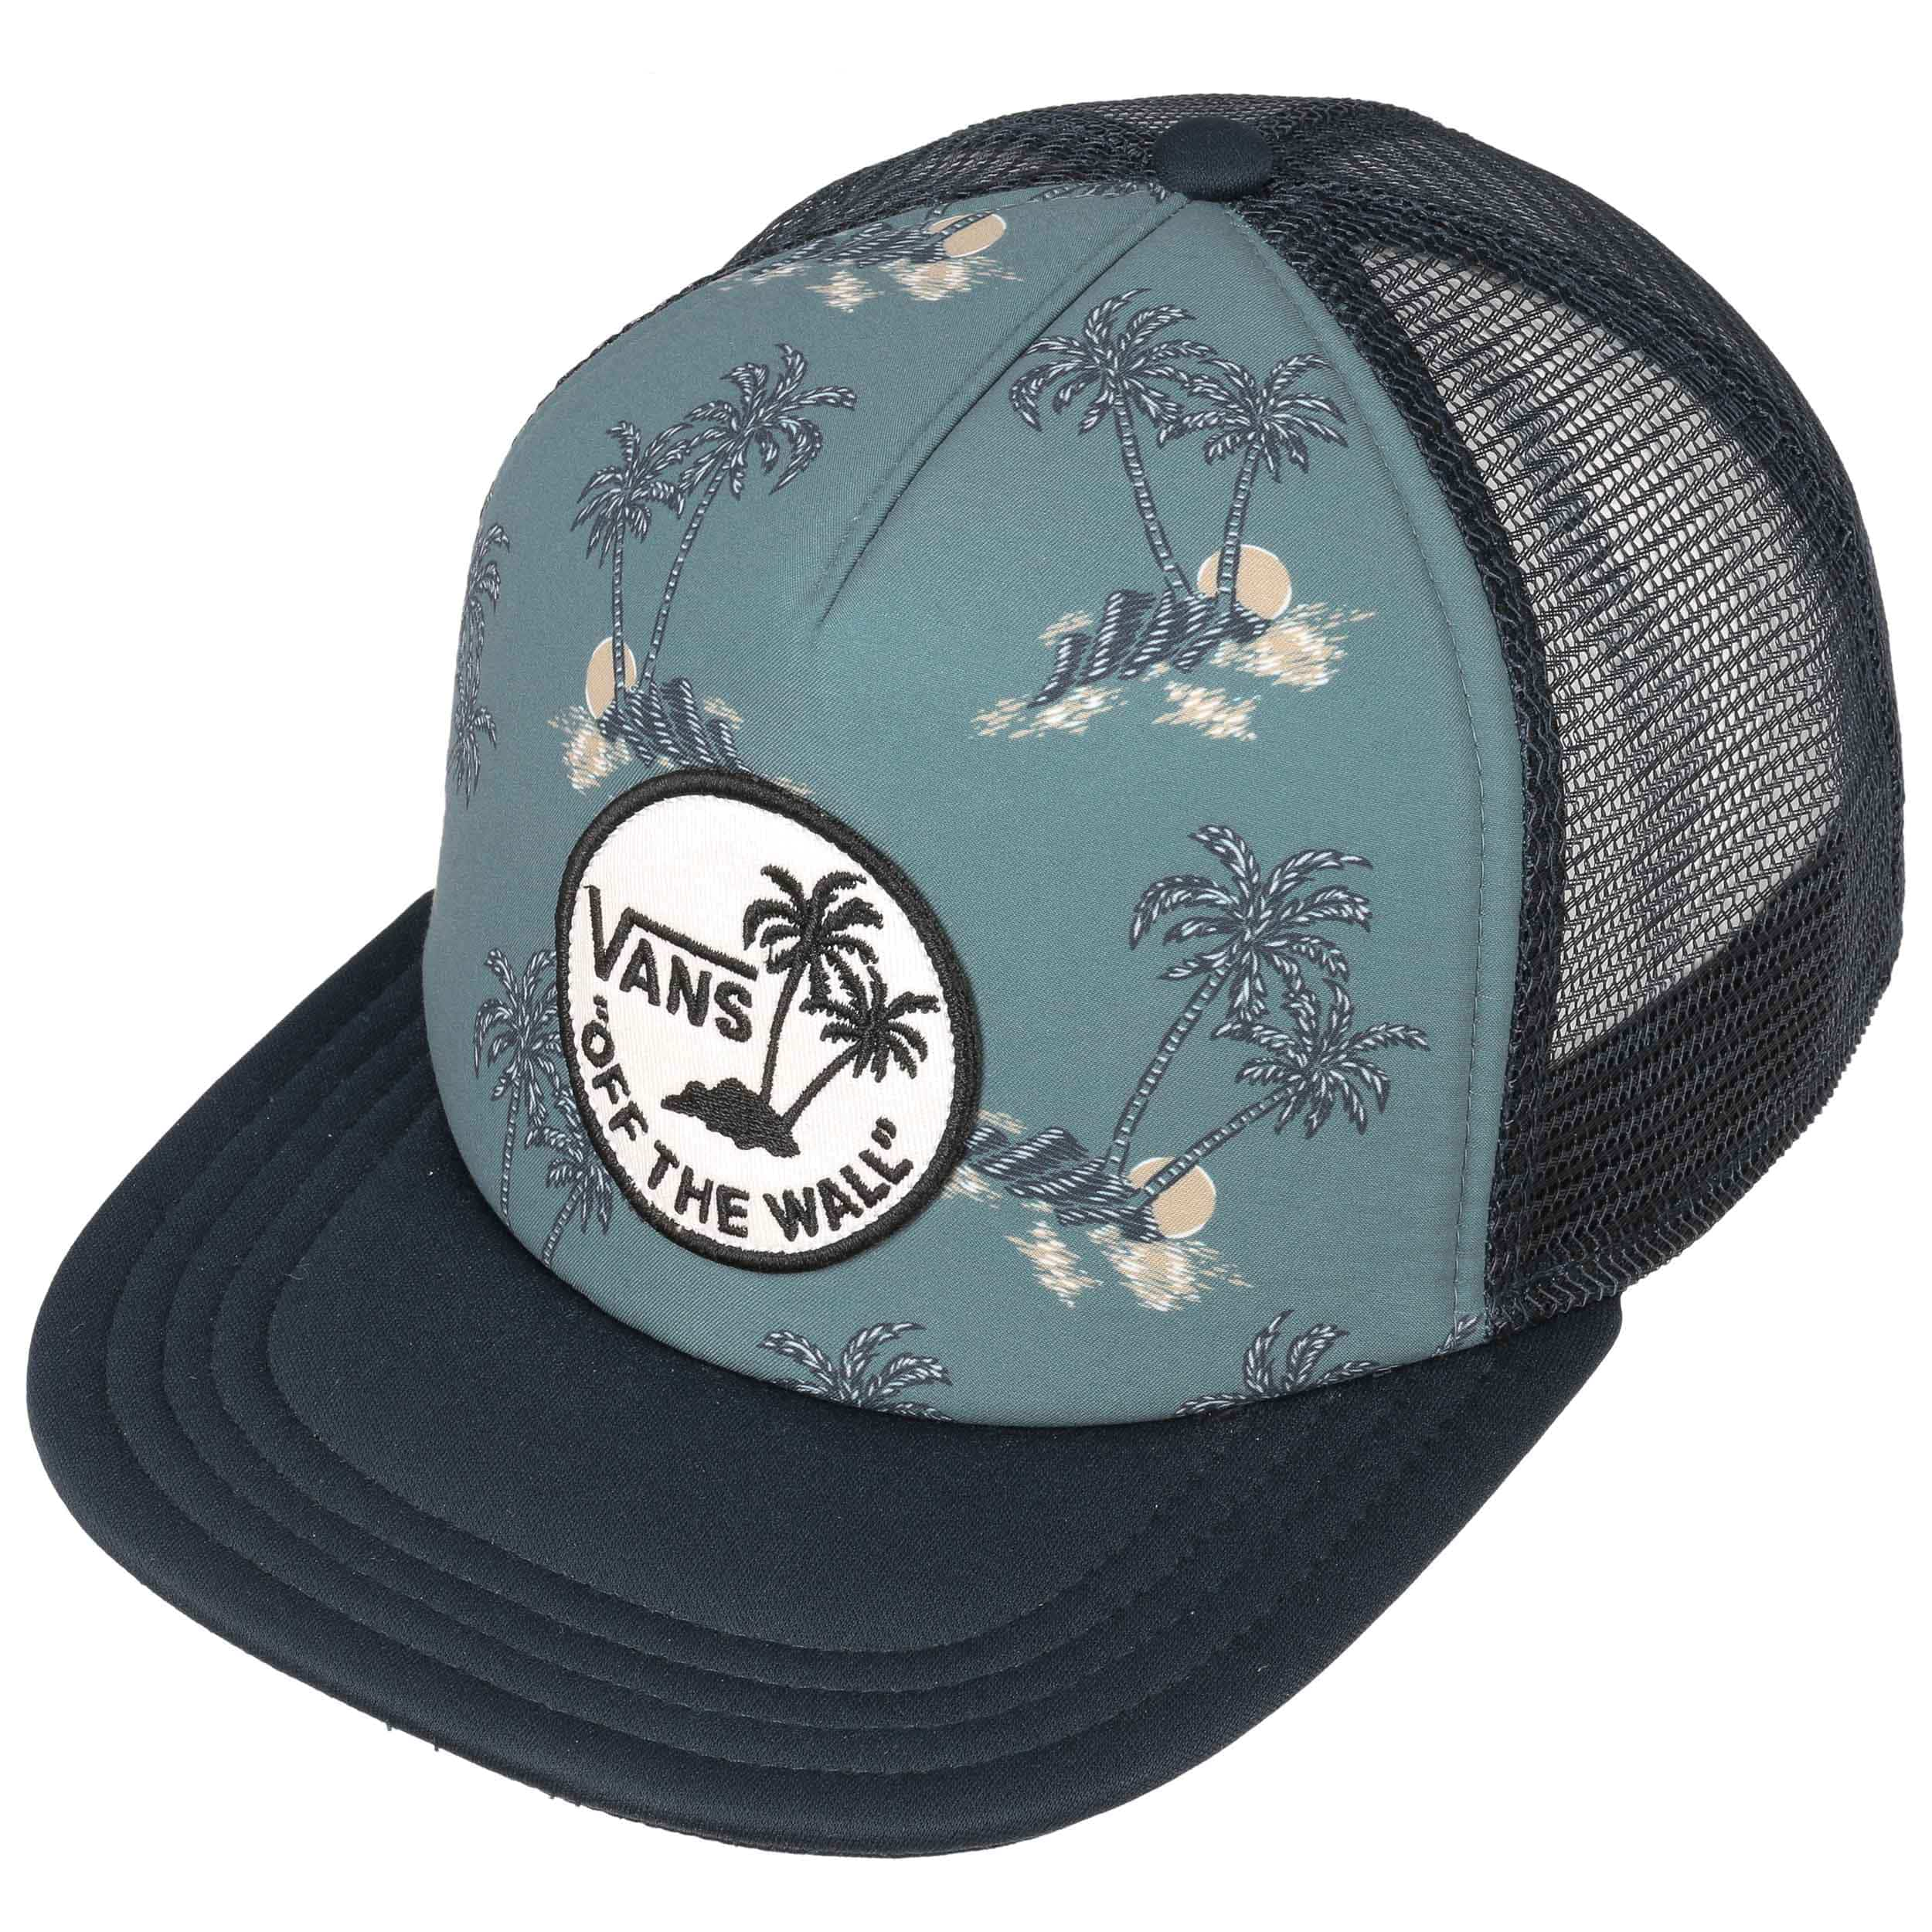 388ad1c5d9b61e from VansBaseball caps · Surf Patch Trucker Cap by Vans - navy 1 ...